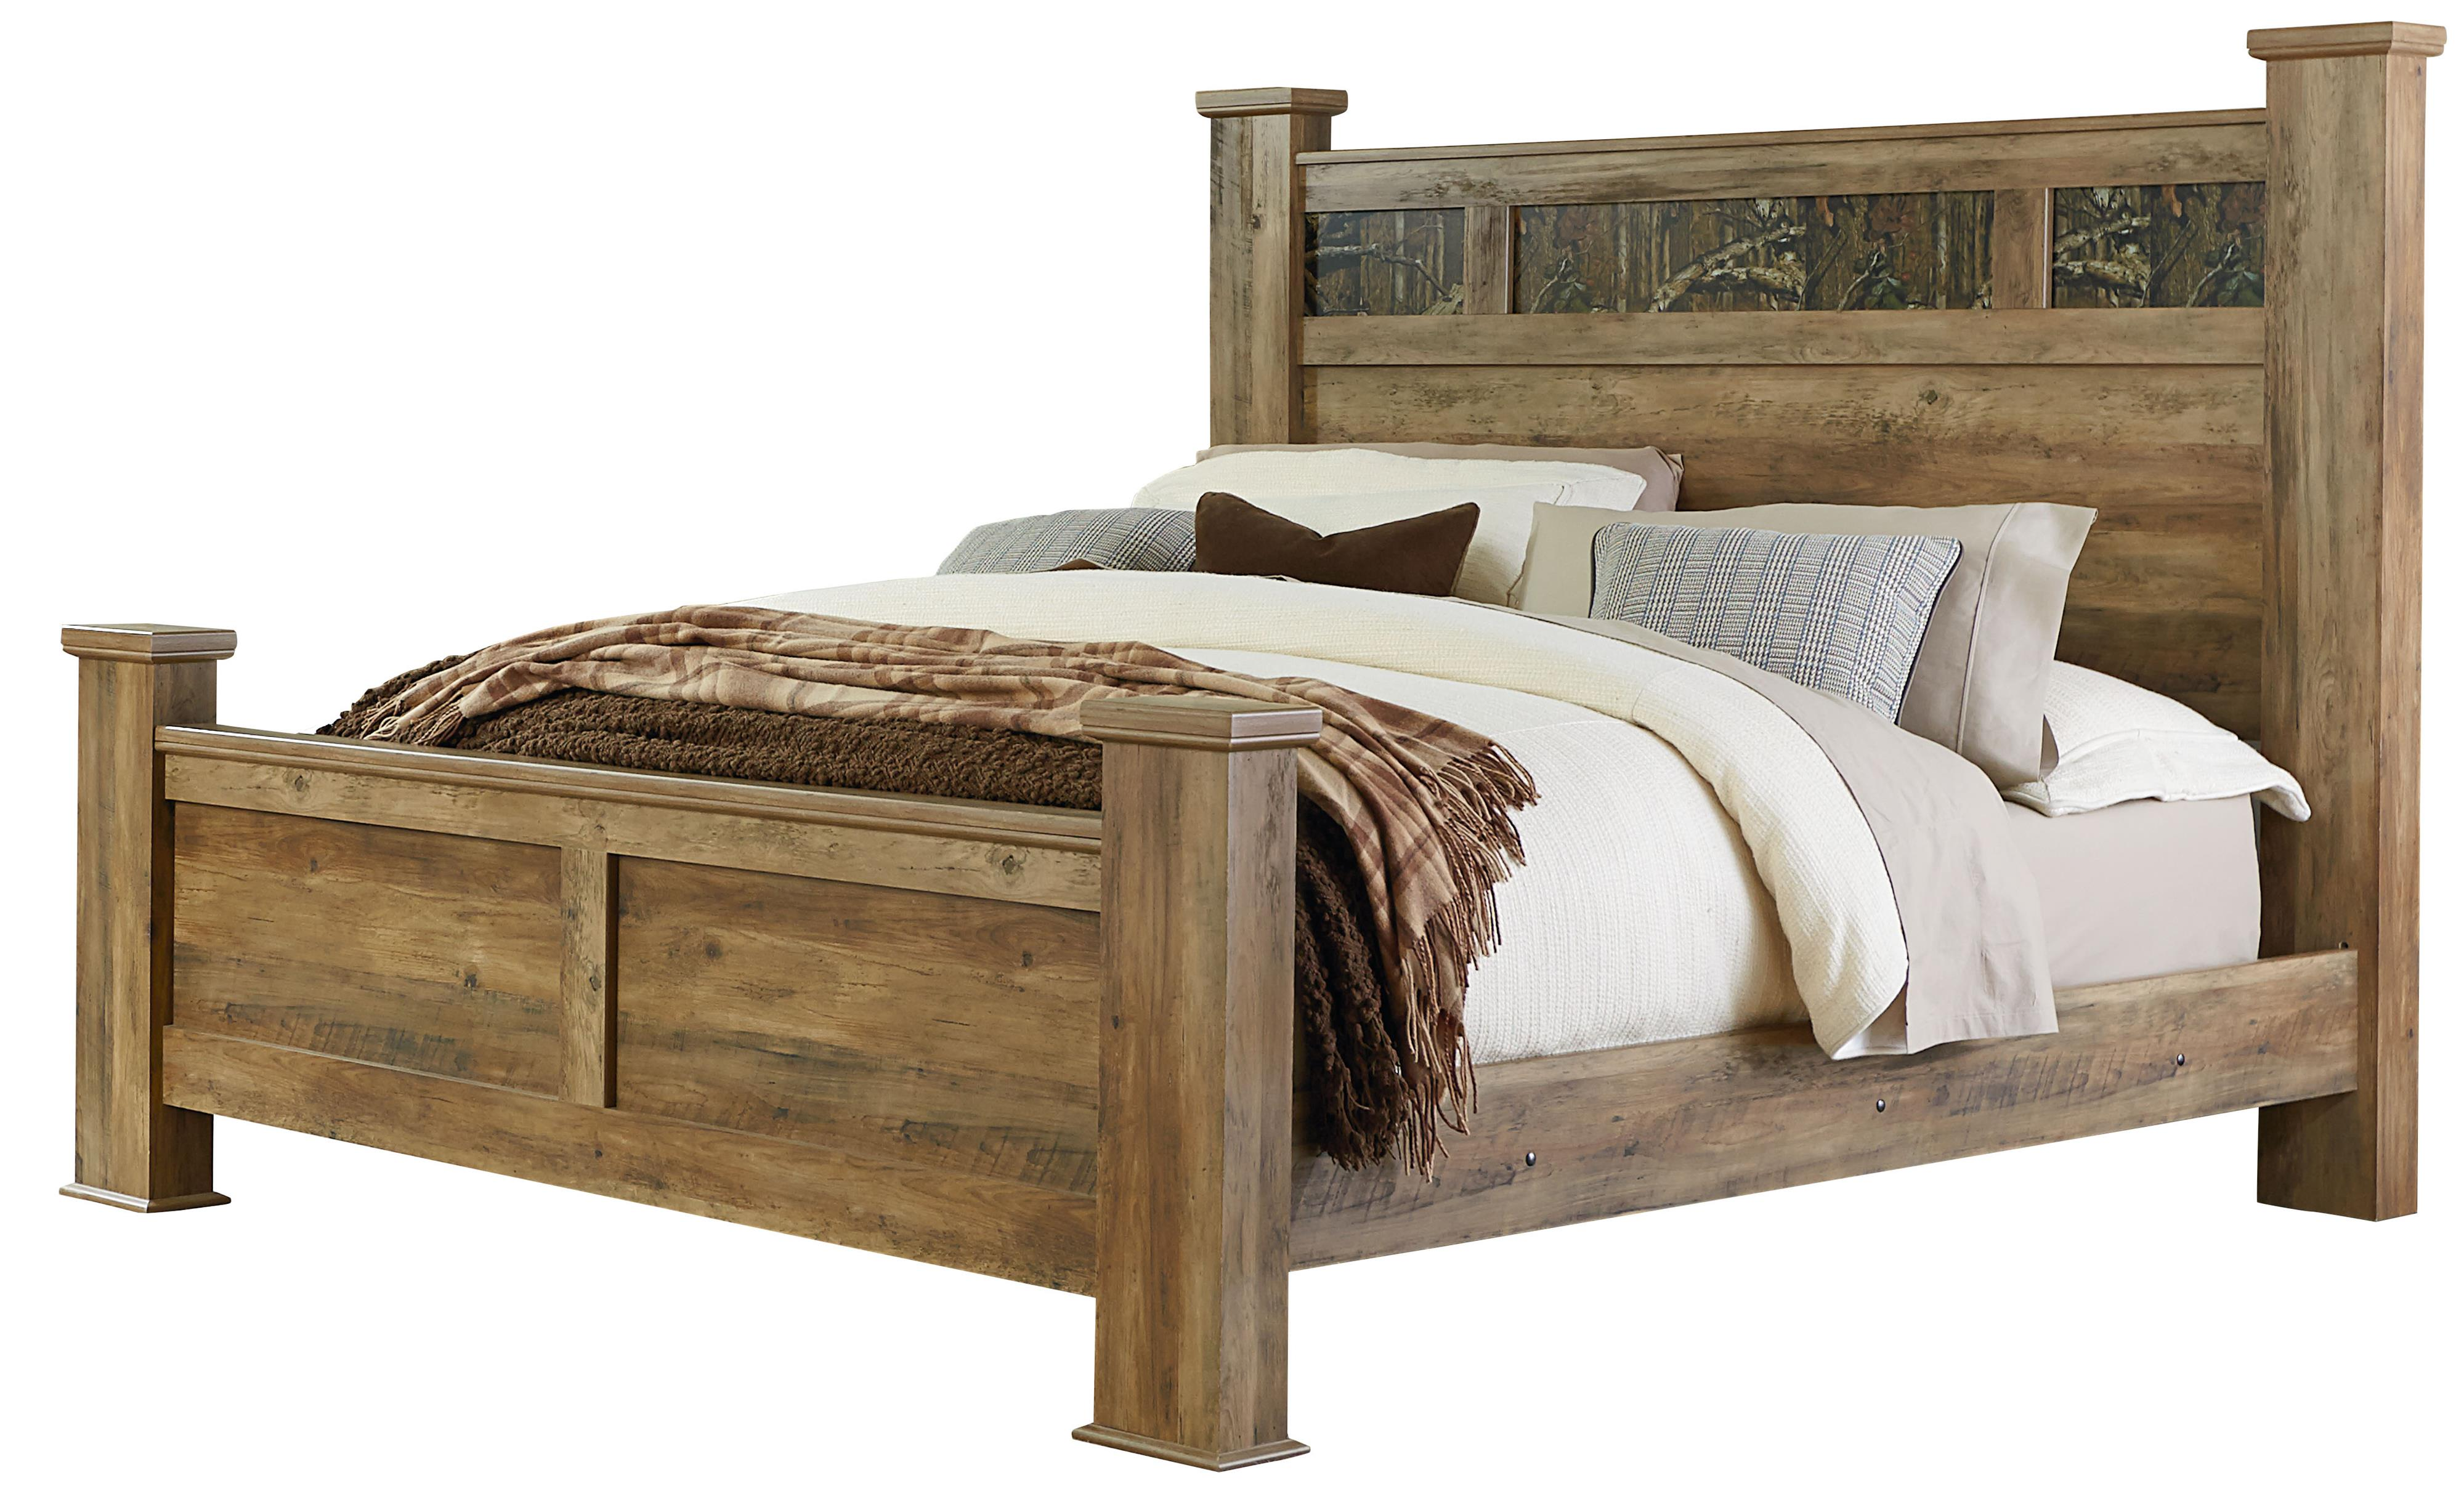 King Bed With Posts King Bed With Oversized Square Posts By Standard Furniture Wolf